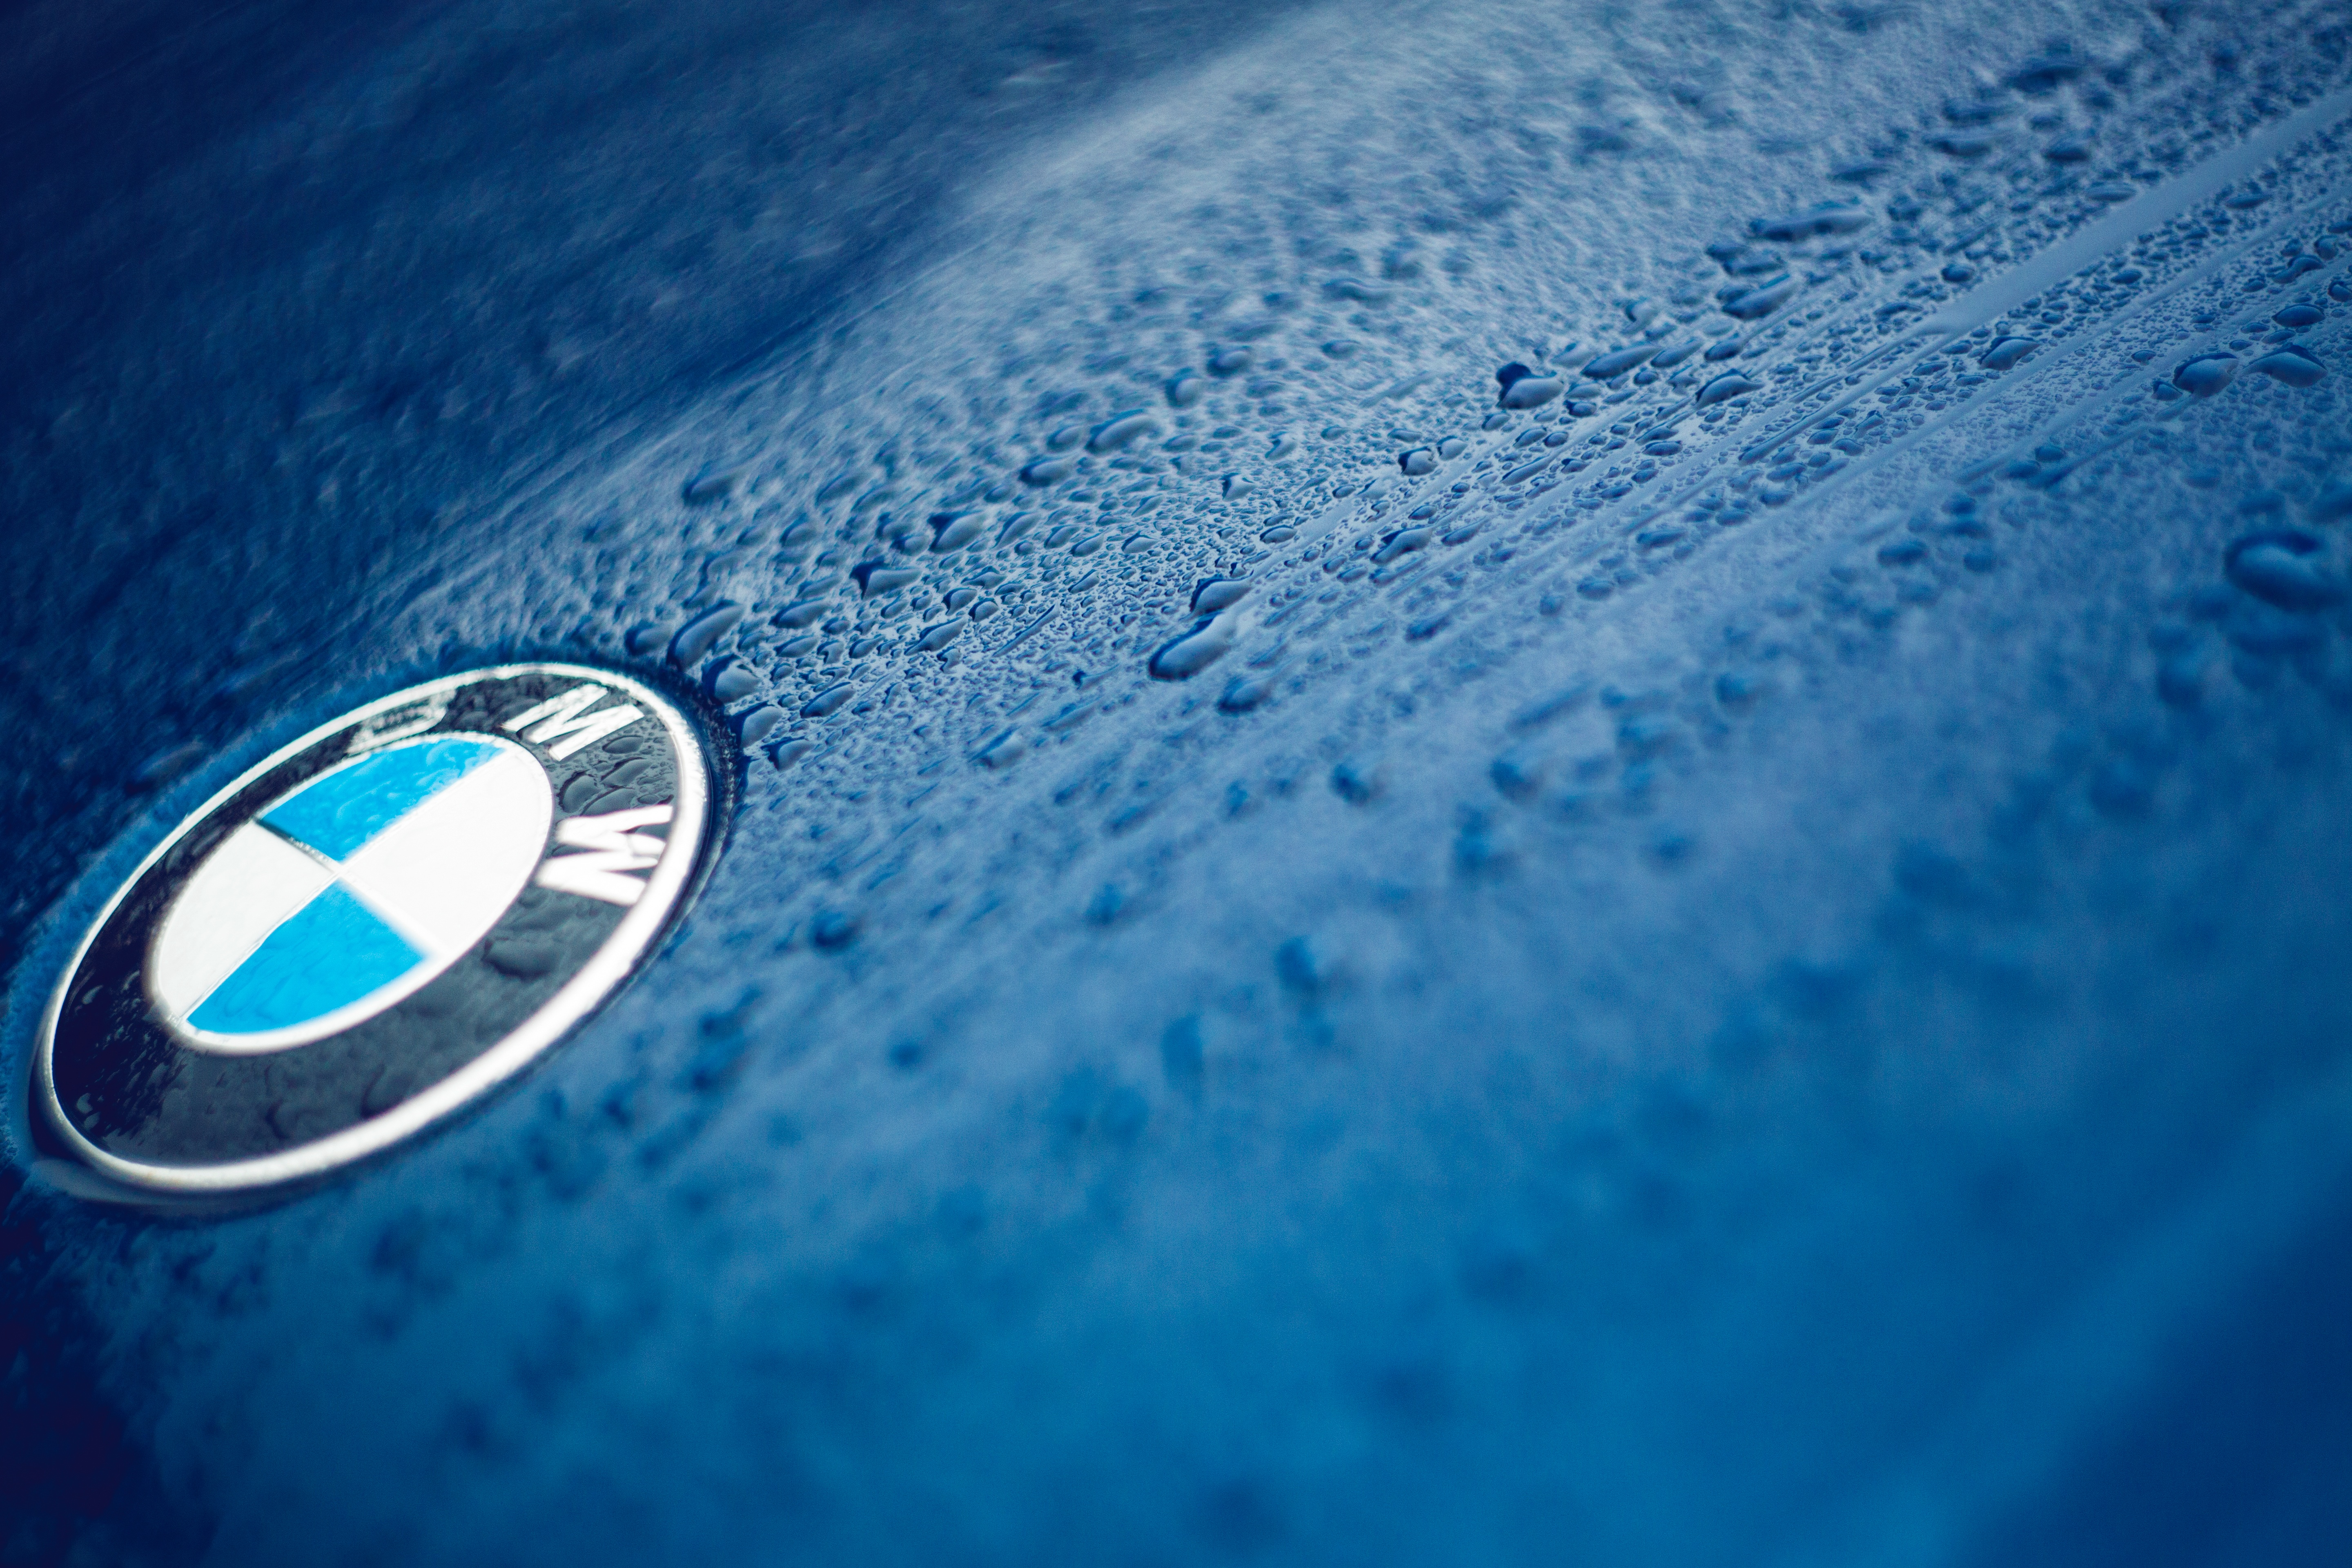 72543 download wallpaper Cars, Bmw, Logo, Logotype, Drops screensavers and pictures for free